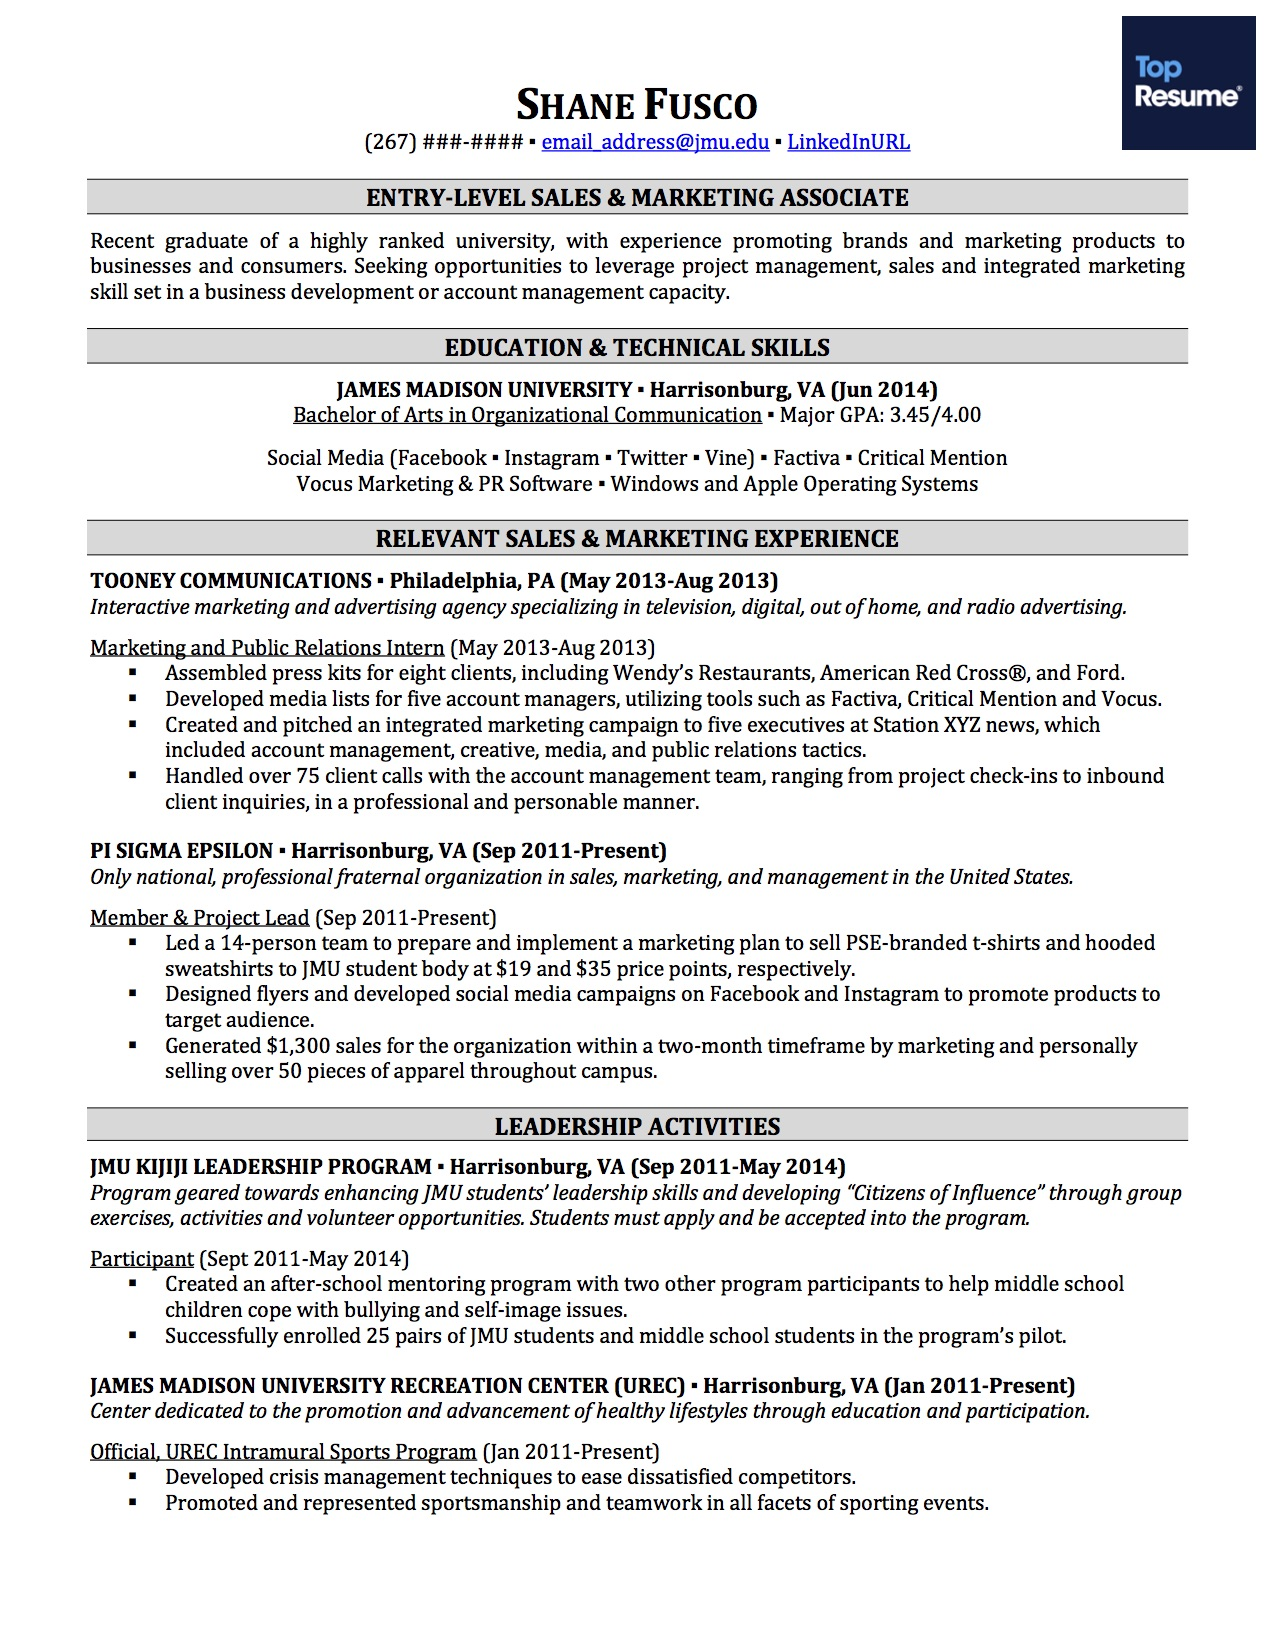 How To Write A Resume For Students With No Experience How To Write A Resume With No Job Experience Topresume